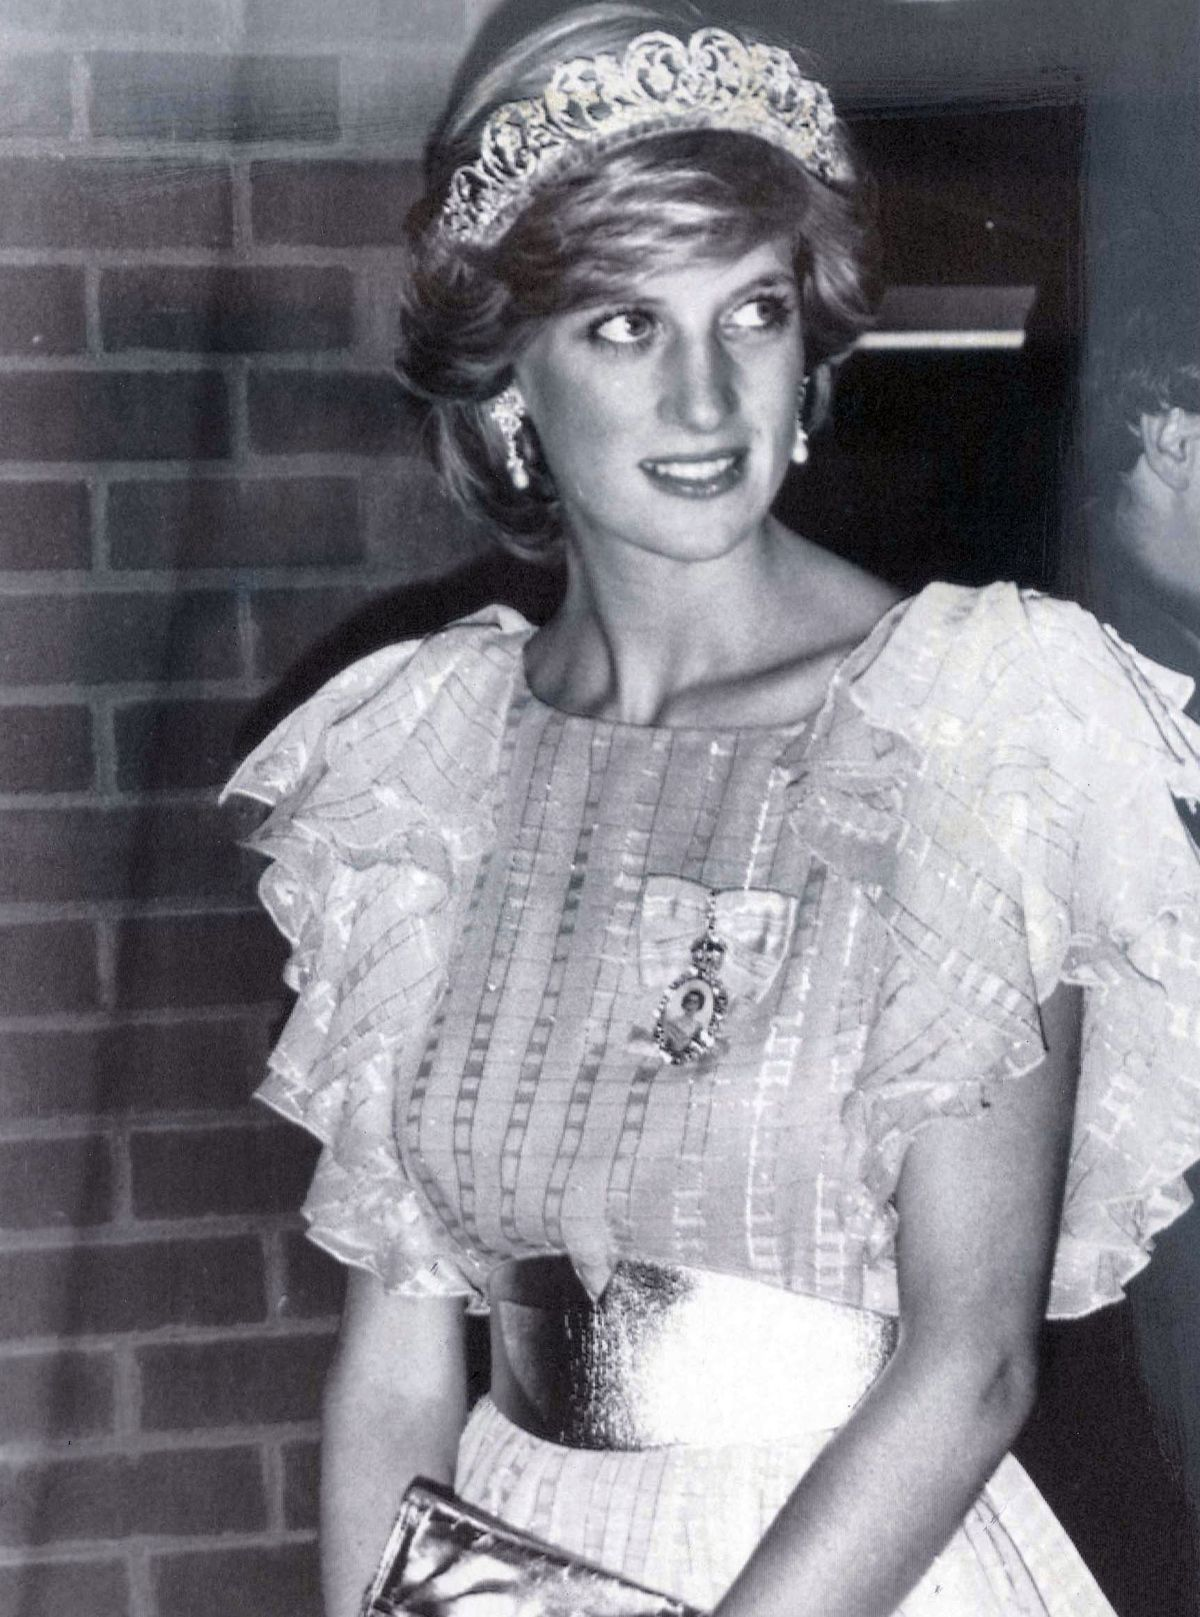 9 of the most memorable Princess Diana moments fans never forget